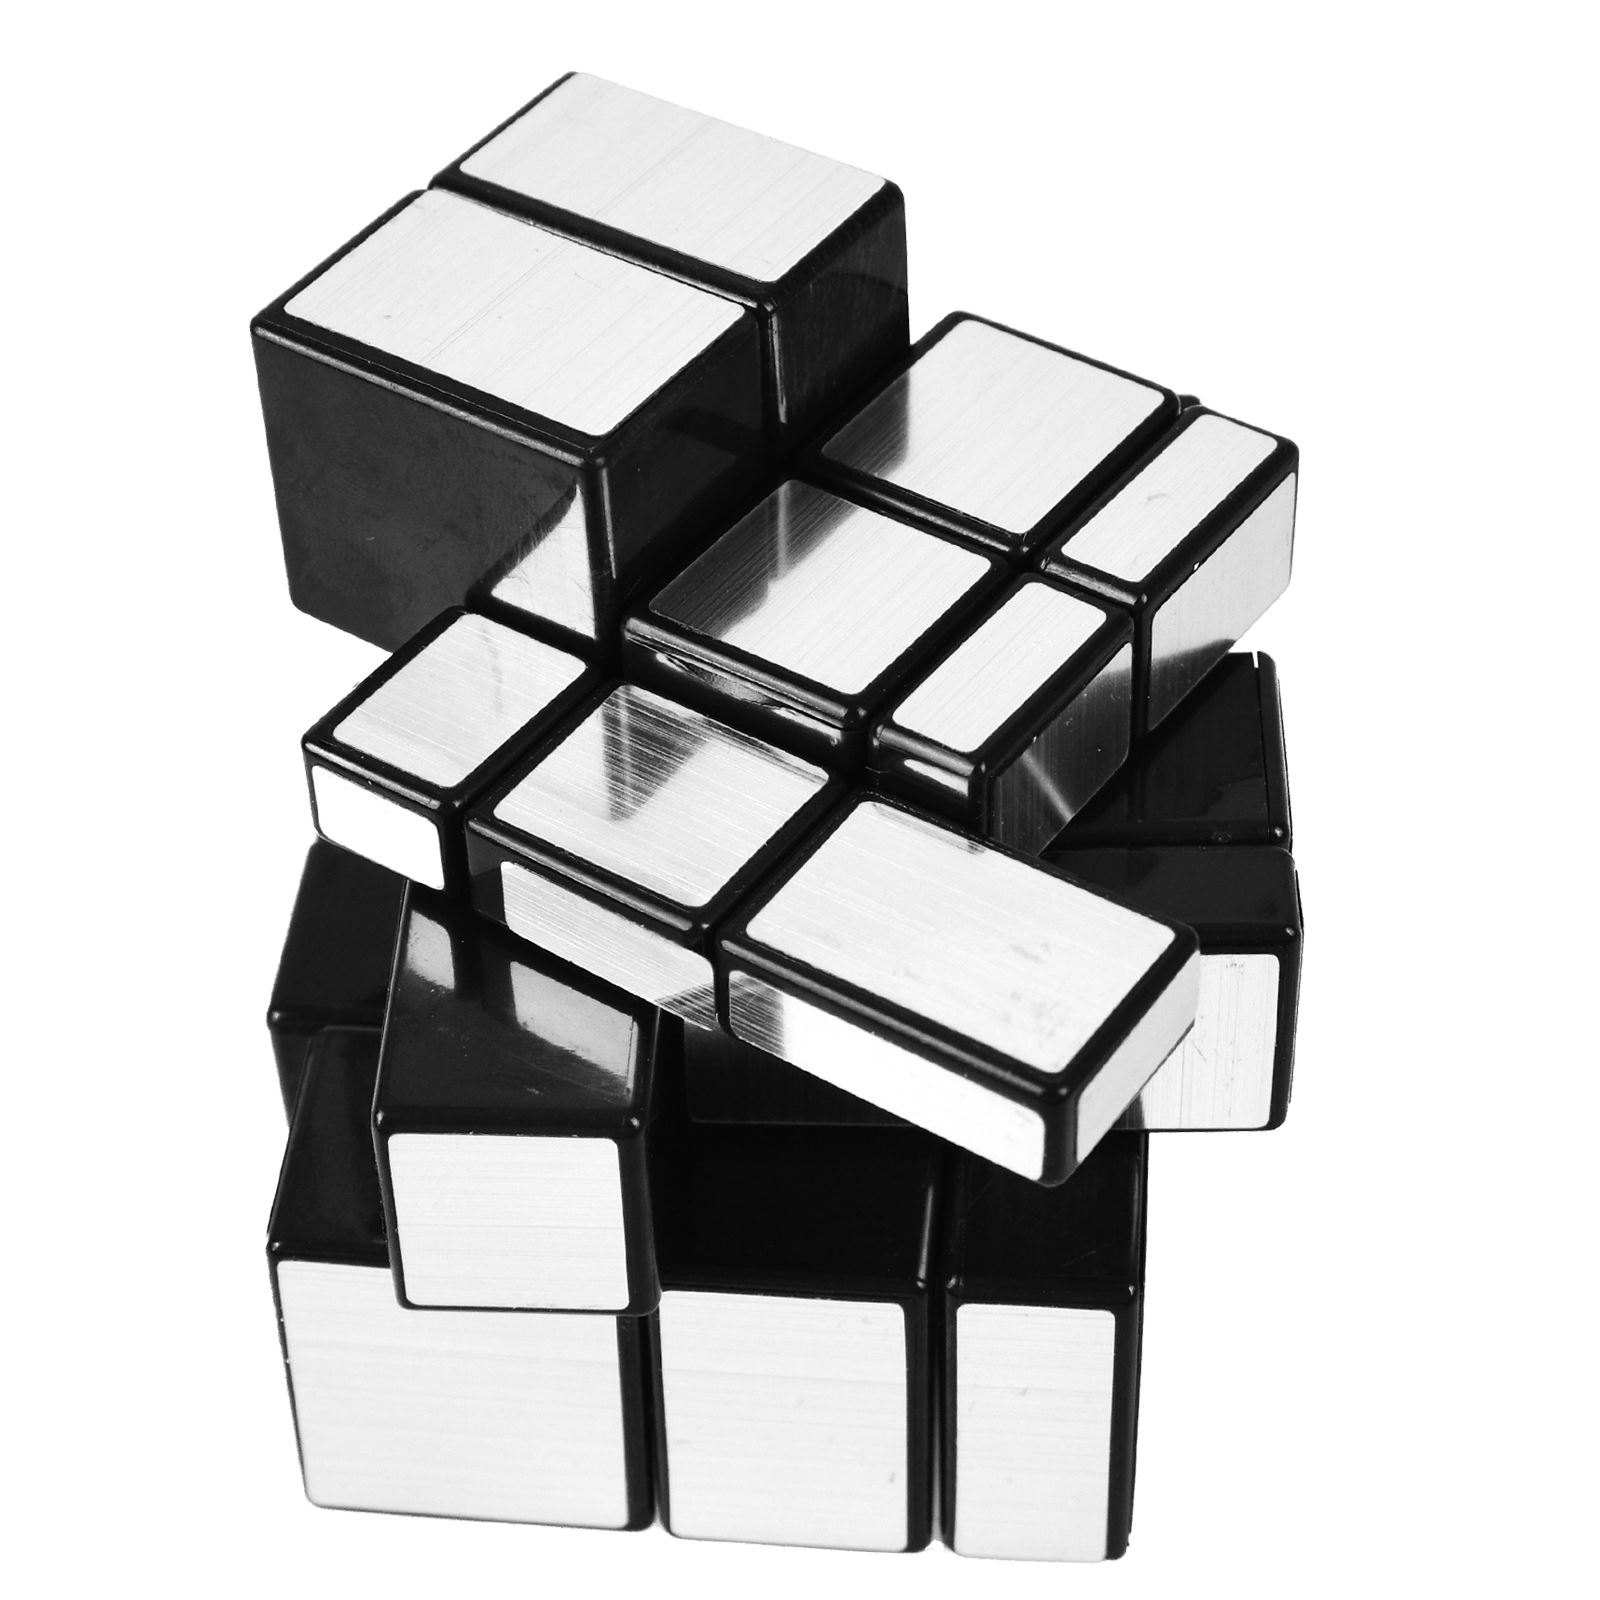 3x3-Miroir-Cube-Puzzle-Mind-Game-Brain-Teasers-Magic-scies-sauteuses-enfants-jouet-adulte-cadeau miniature 10